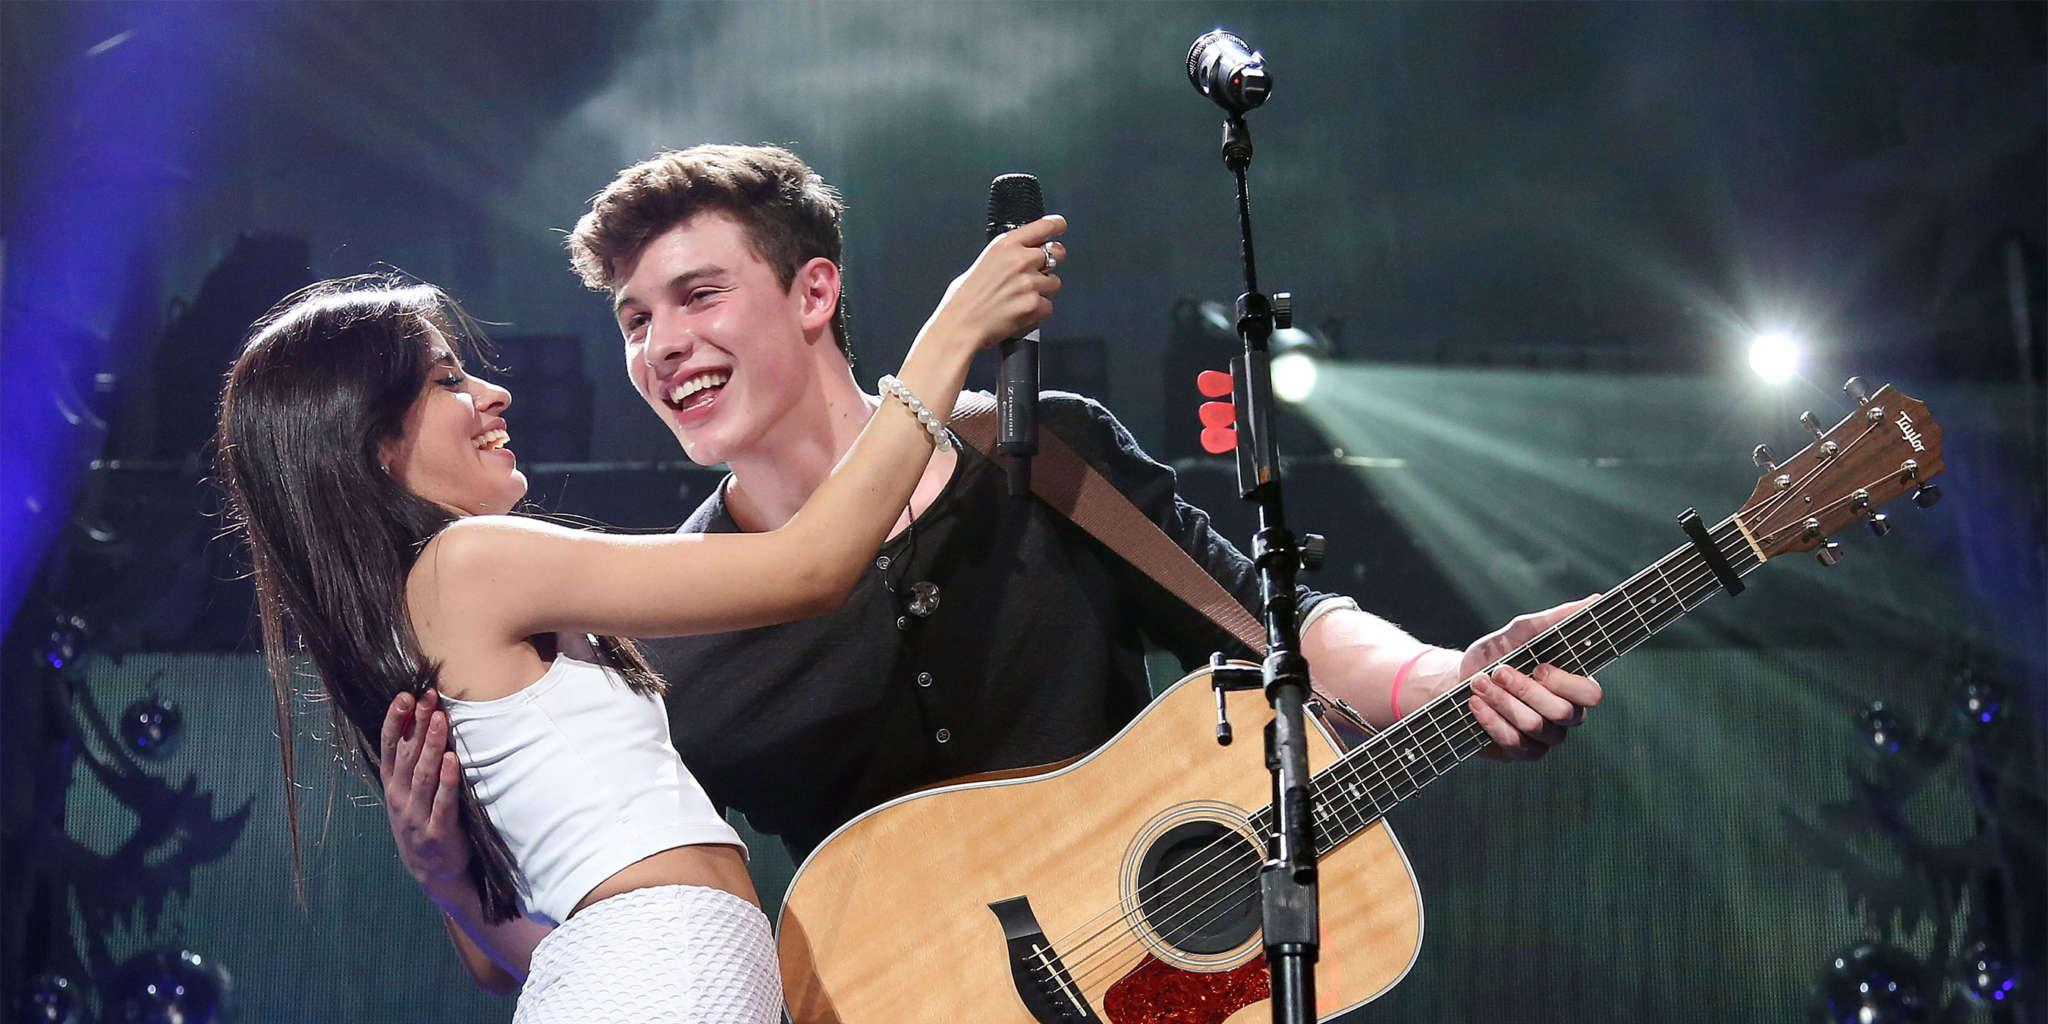 Justin Bieber Mocks Camila Cabello And Shawn Mendes' Viral Kissing Video - 'You Guy Are Weird!'